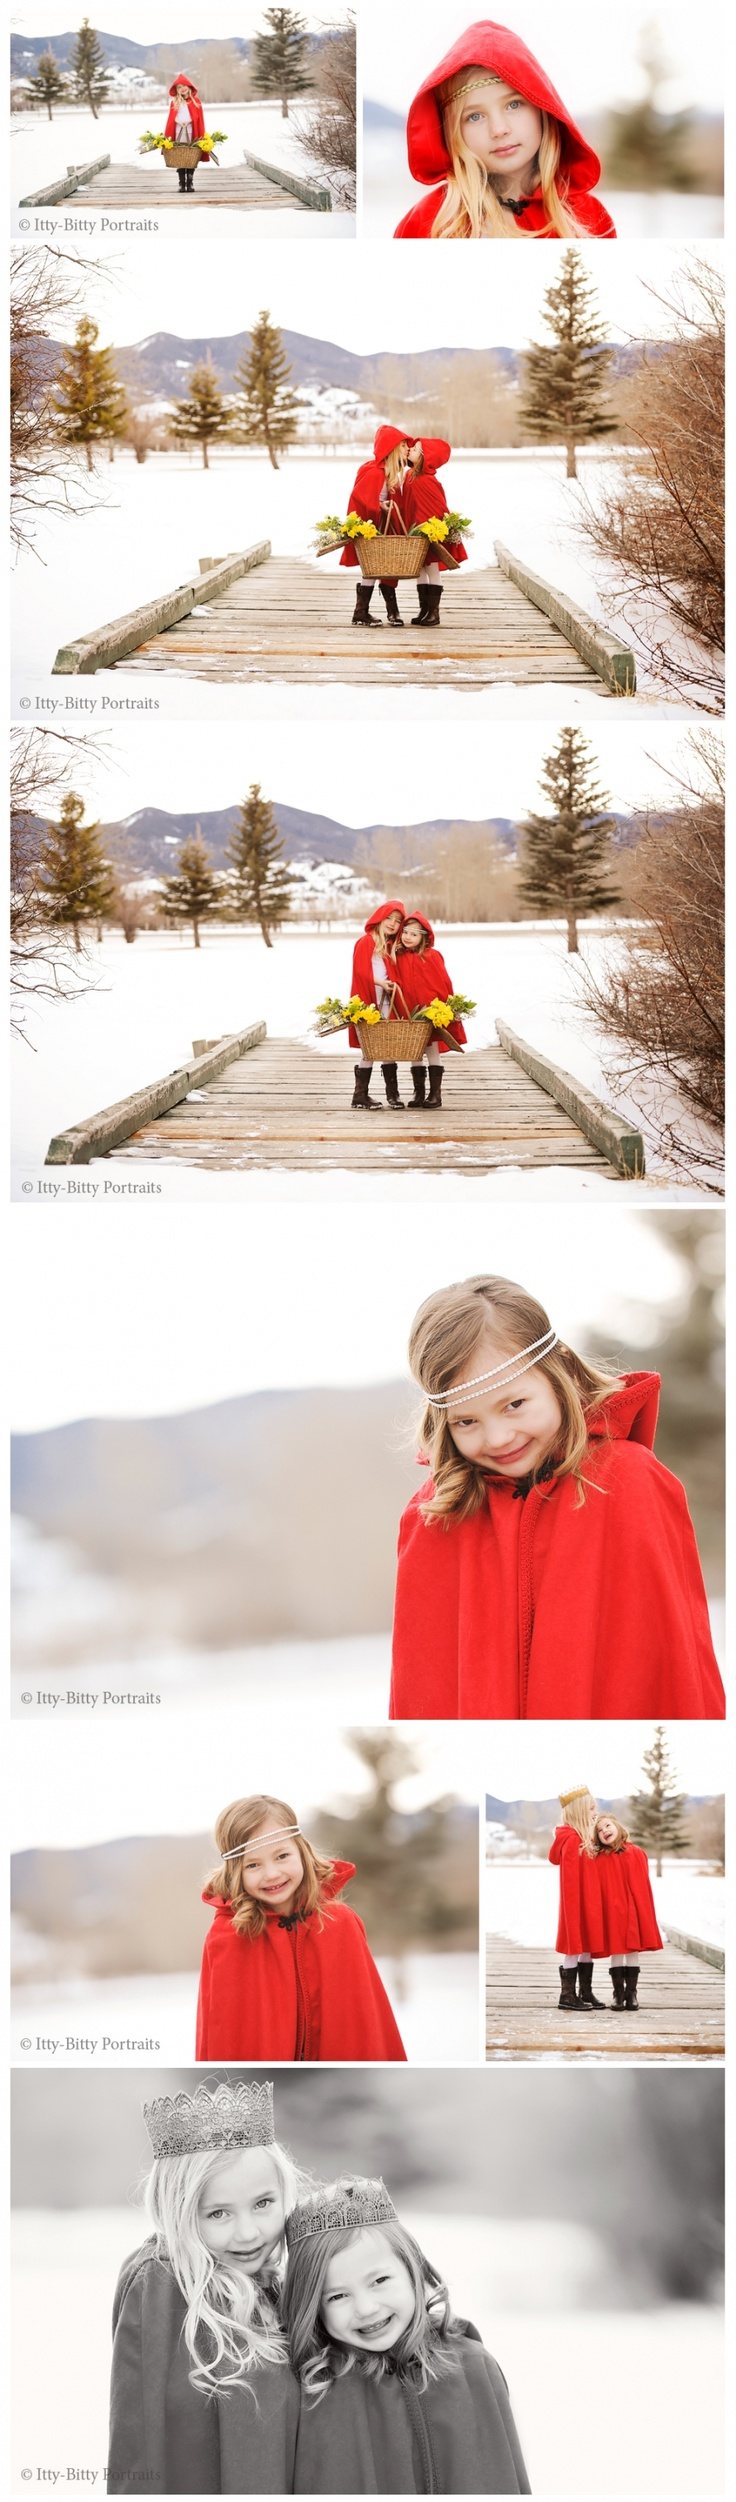 50 best Photography - Snow/Winter images on Pinterest | Xmas pics ...